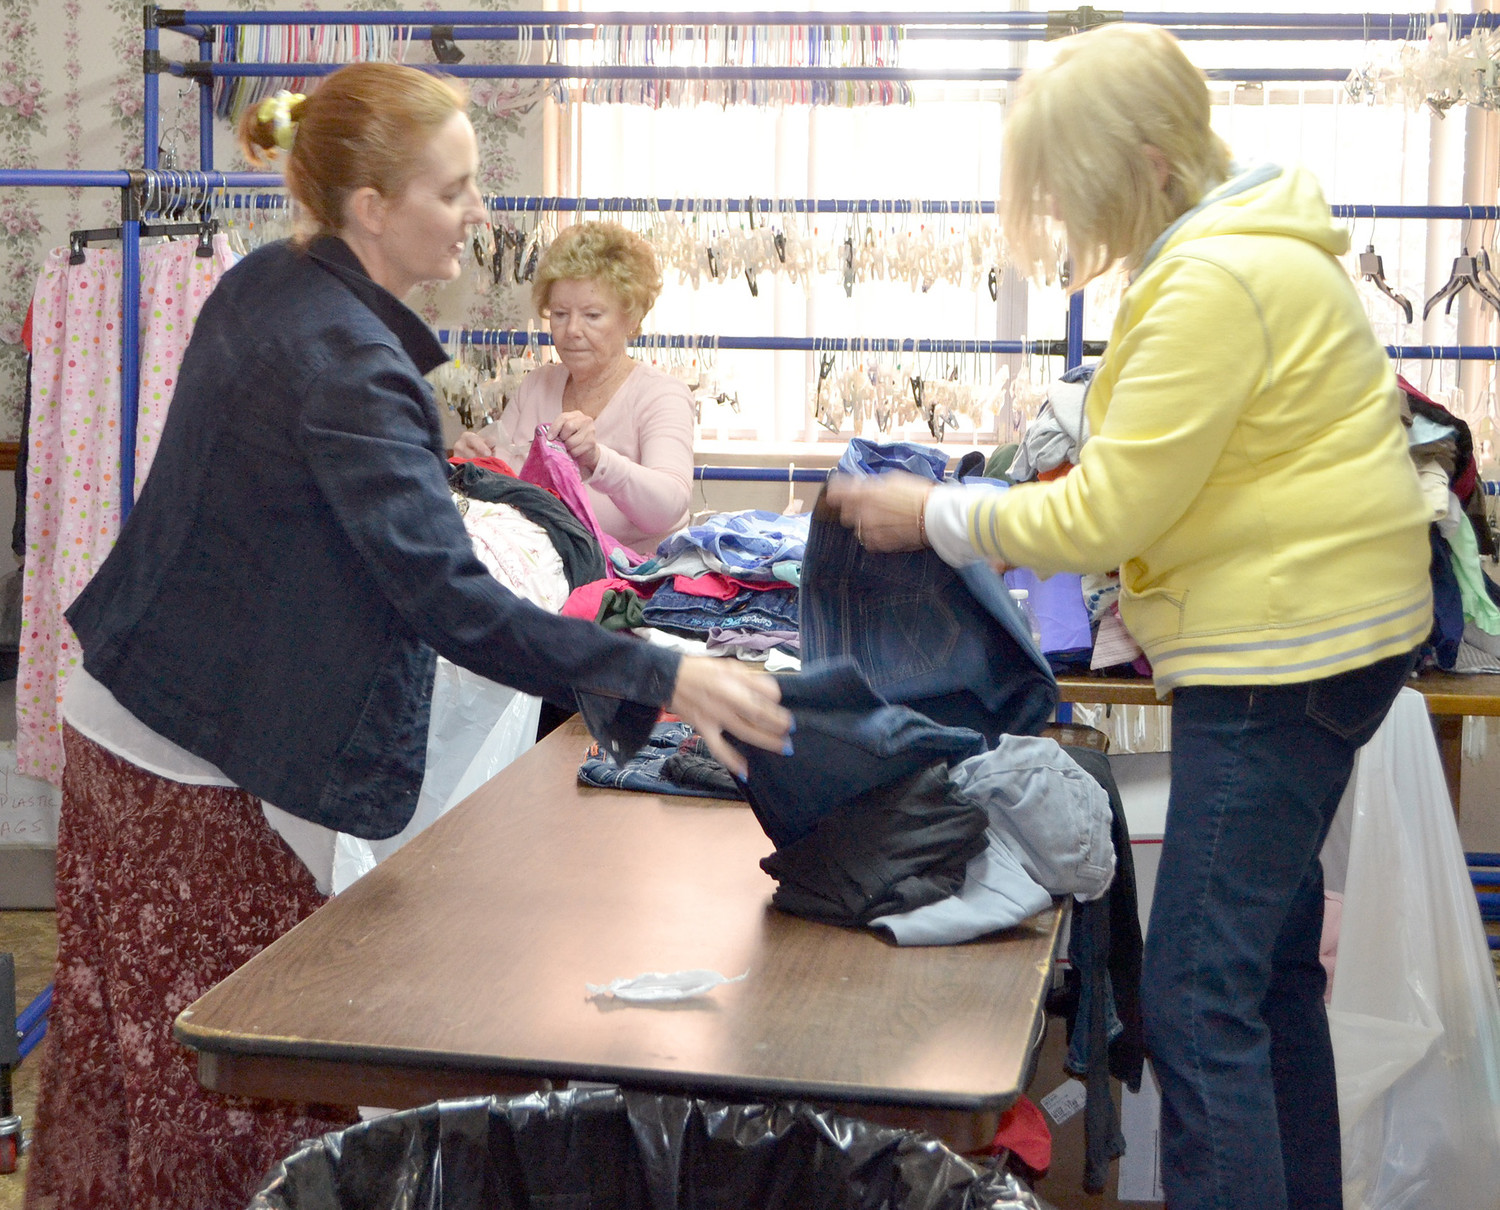 ANGIE QUIMBY, left, Margaret Firetto and Fran Lemmon, right, sort through some clothing at The Caring Place.